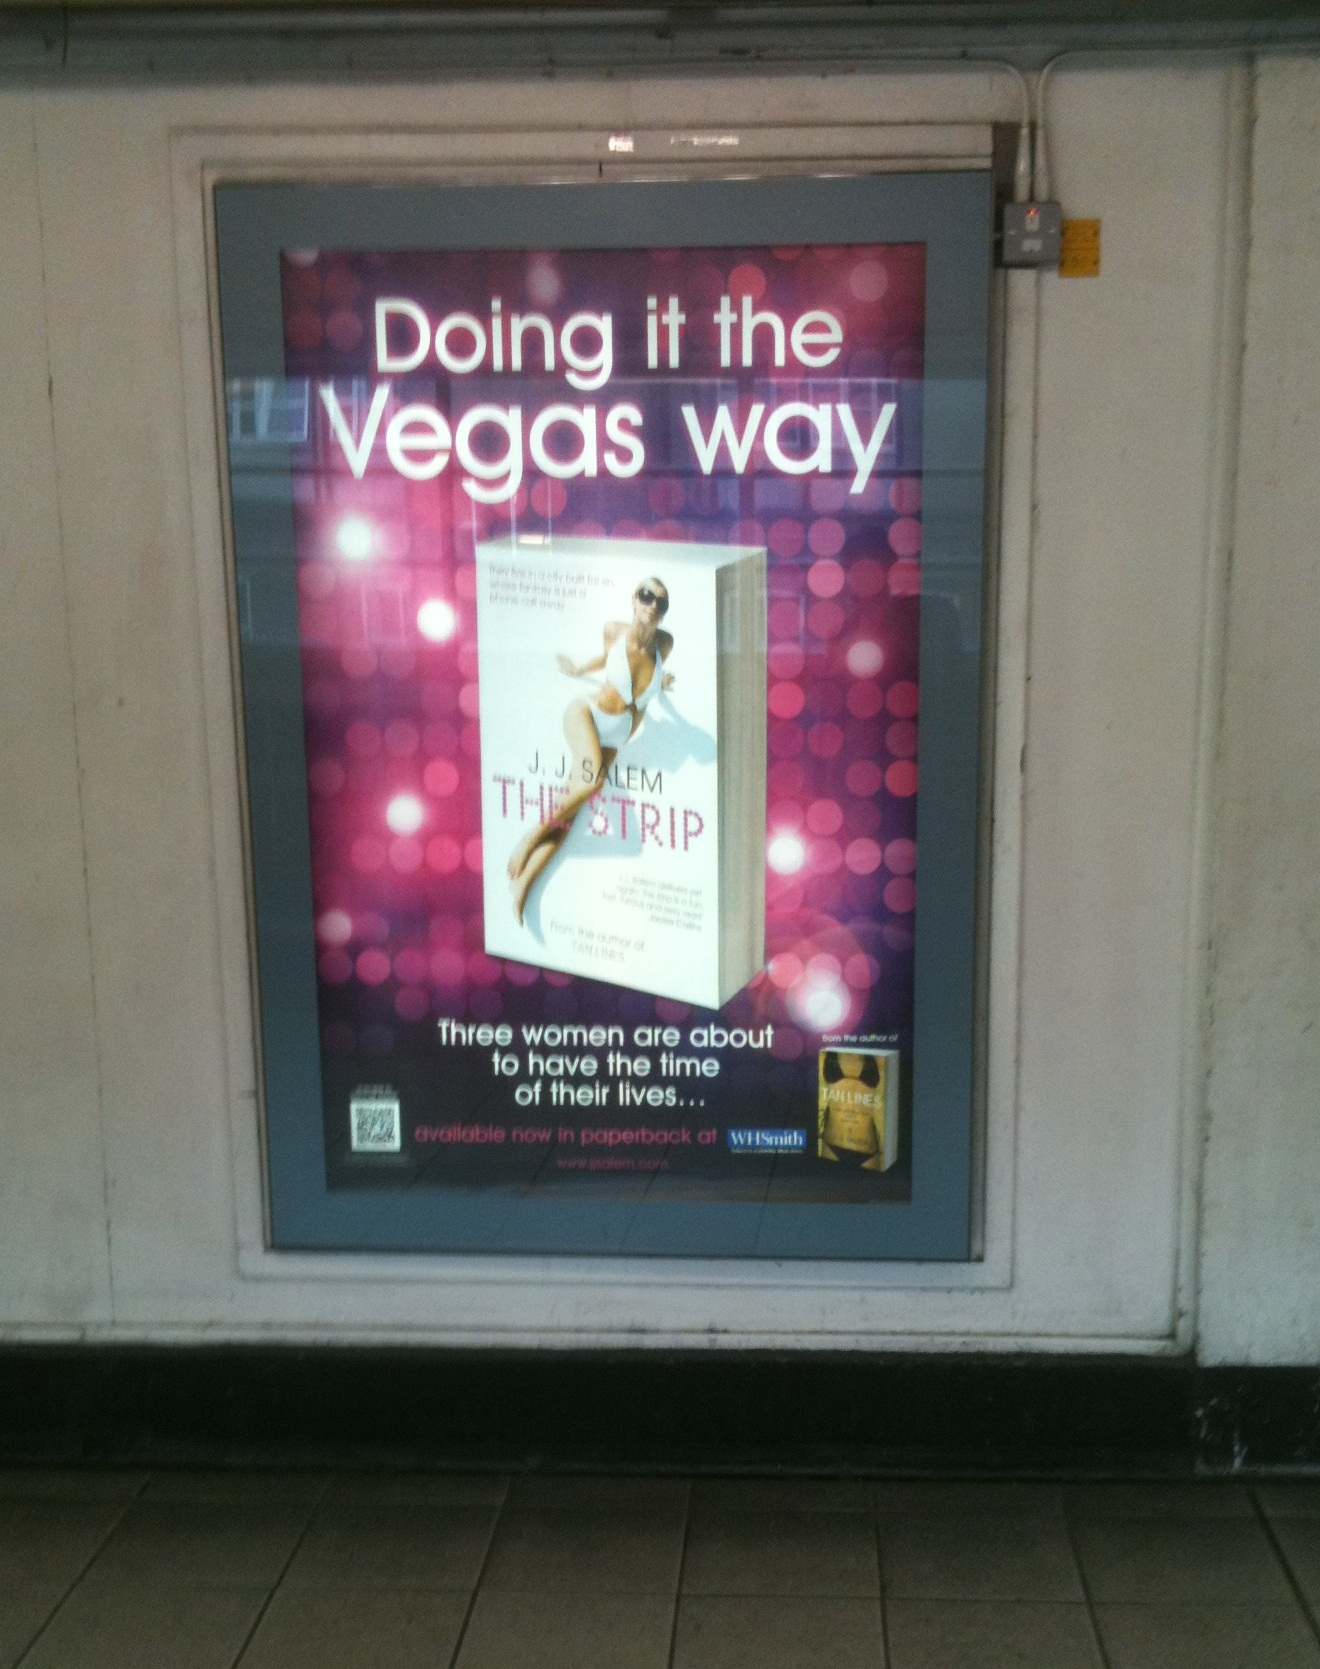 Jj Salem's The Strip Is Out This Friday 15th July Pan Macmillan Has Done  Some Excellent Advertising, Including Coverage On The London Underground